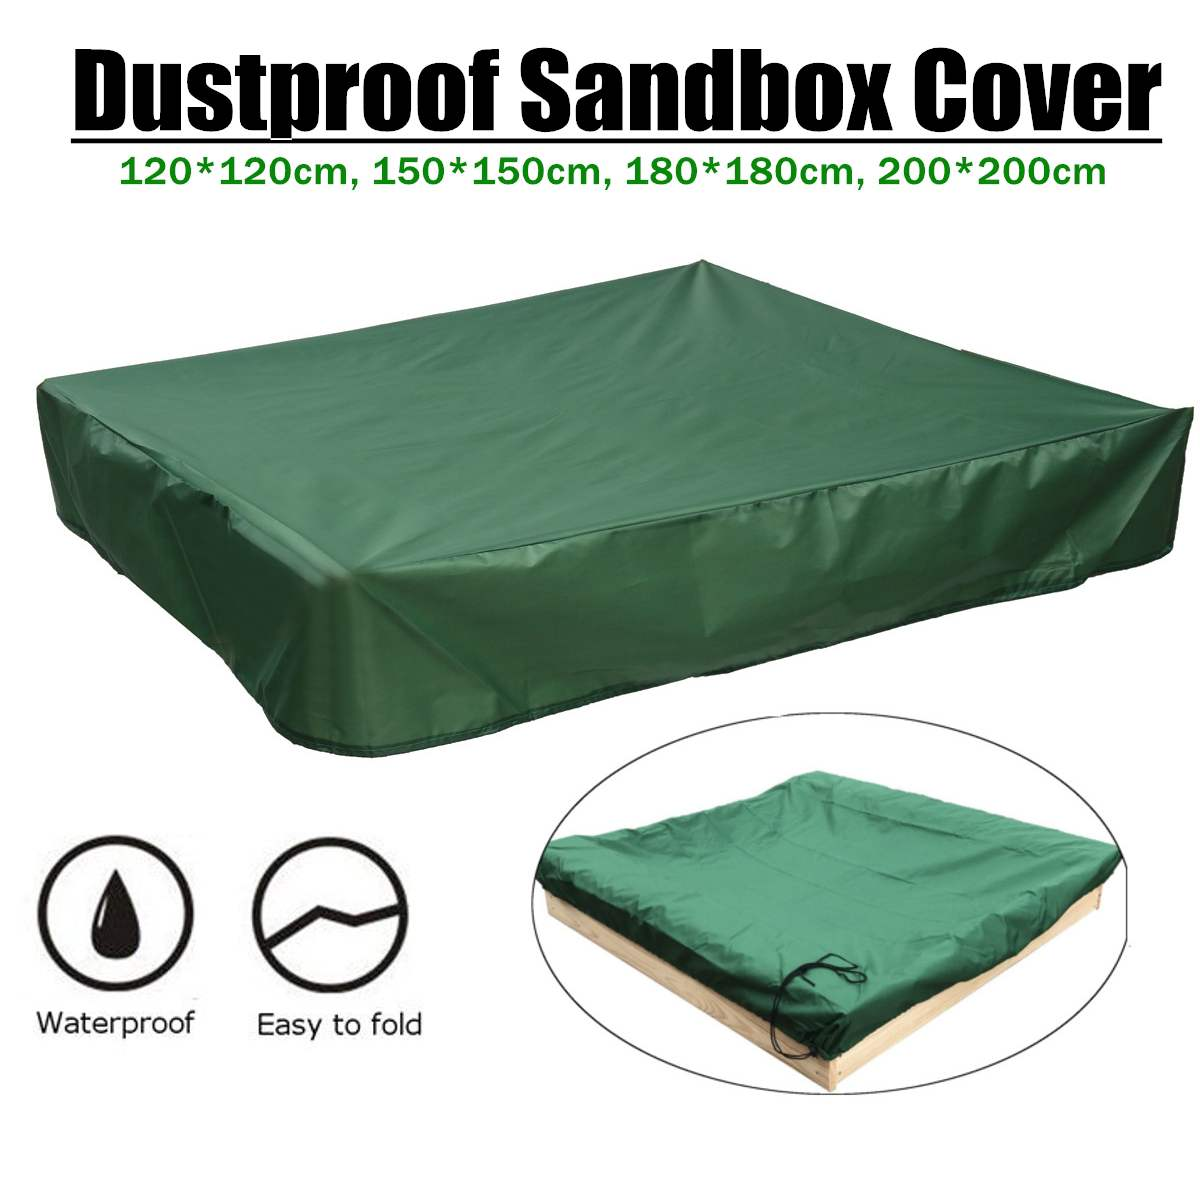 Household Merchandises All-purpose Covers Energetic Oxford Cloth Dust Cover 120/150/180/200cm Drawstring Sandbox Sandpit Dustproof Cover Canopy Waterproof Shelter Garden Farm